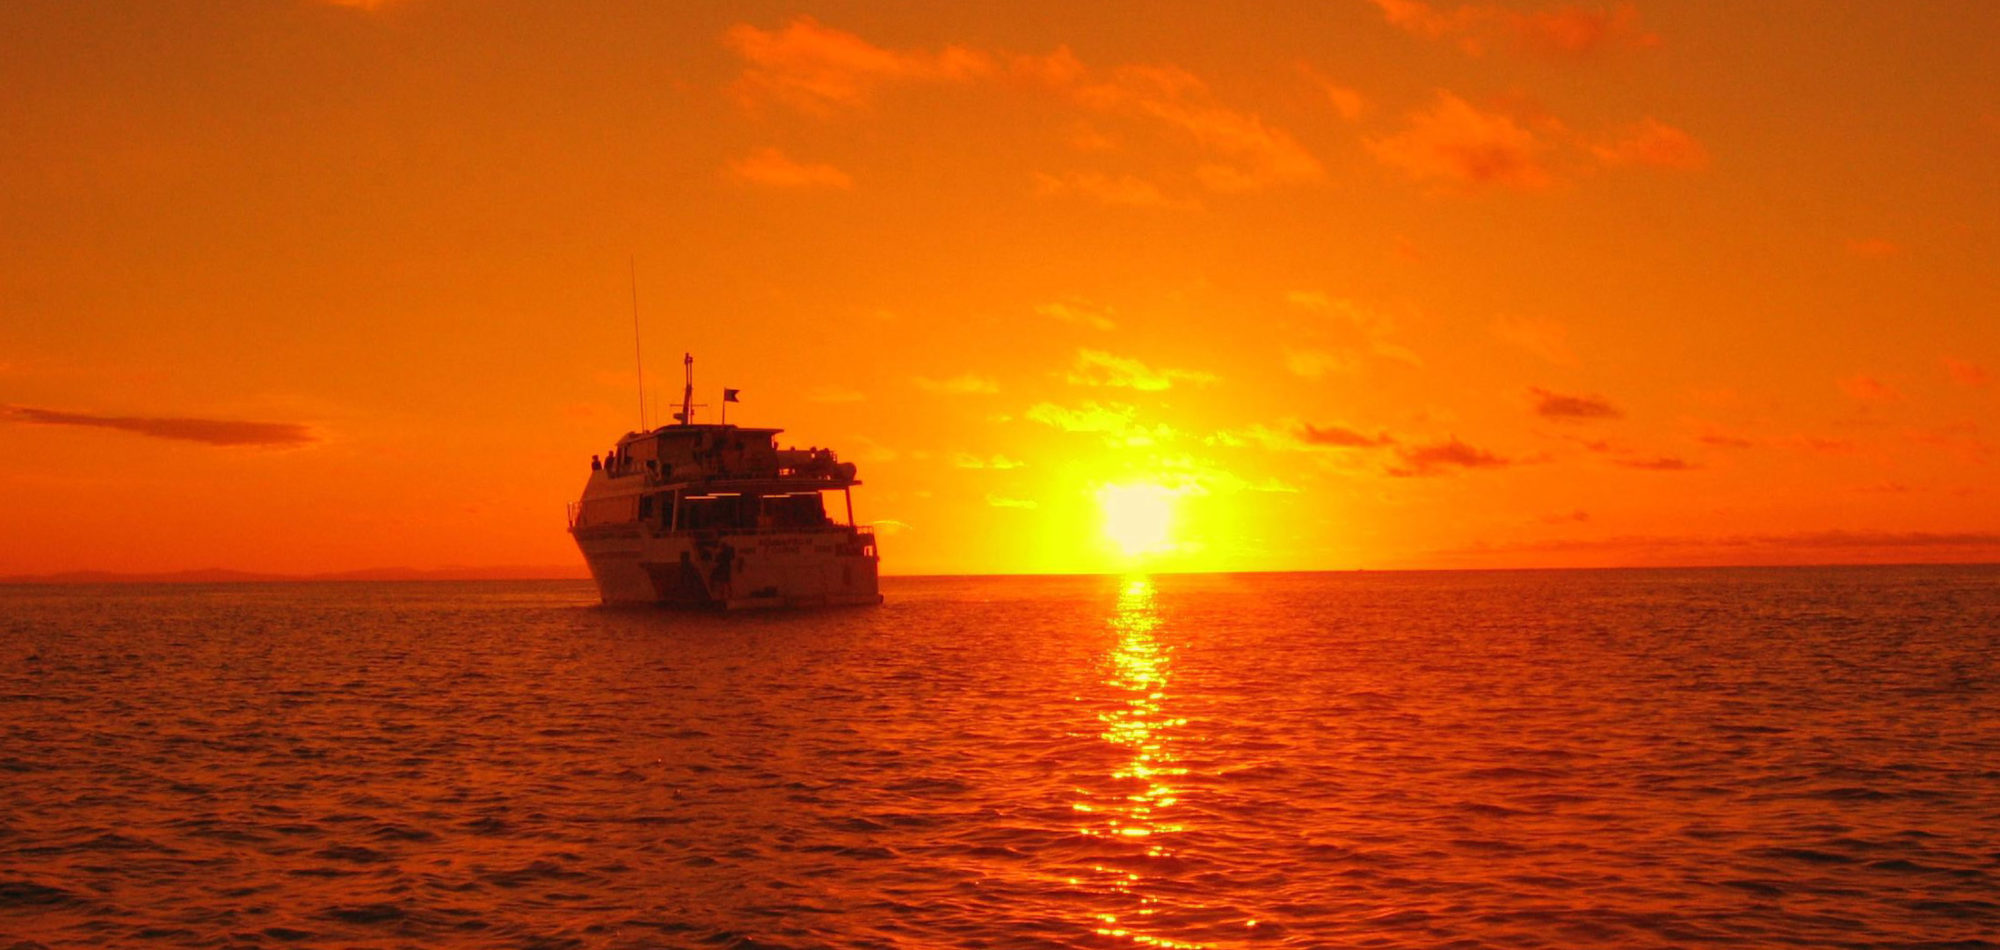 Cairns dive certification - sunset on the Great Barrier Reef